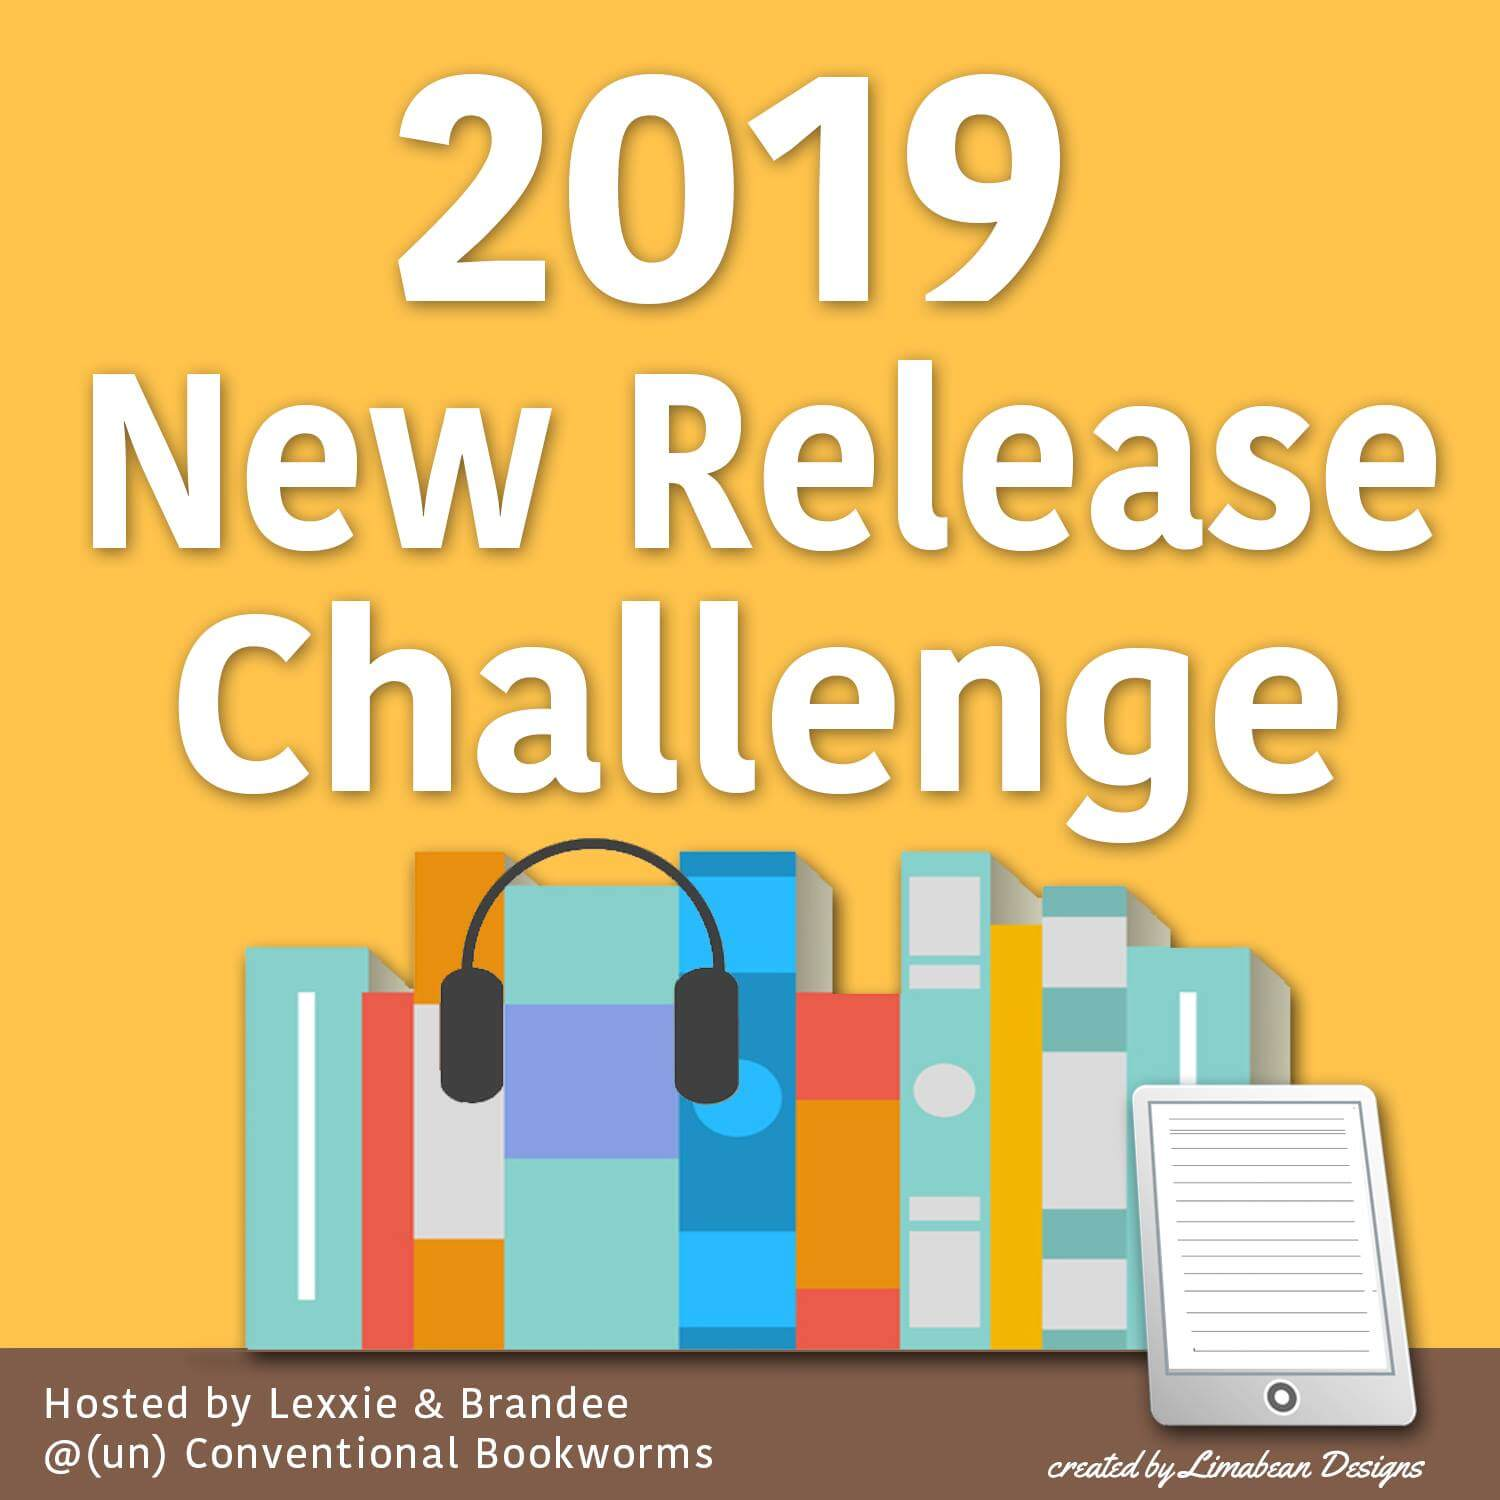 2019 New Release Challenge logo - (un)Conventional Bookworms